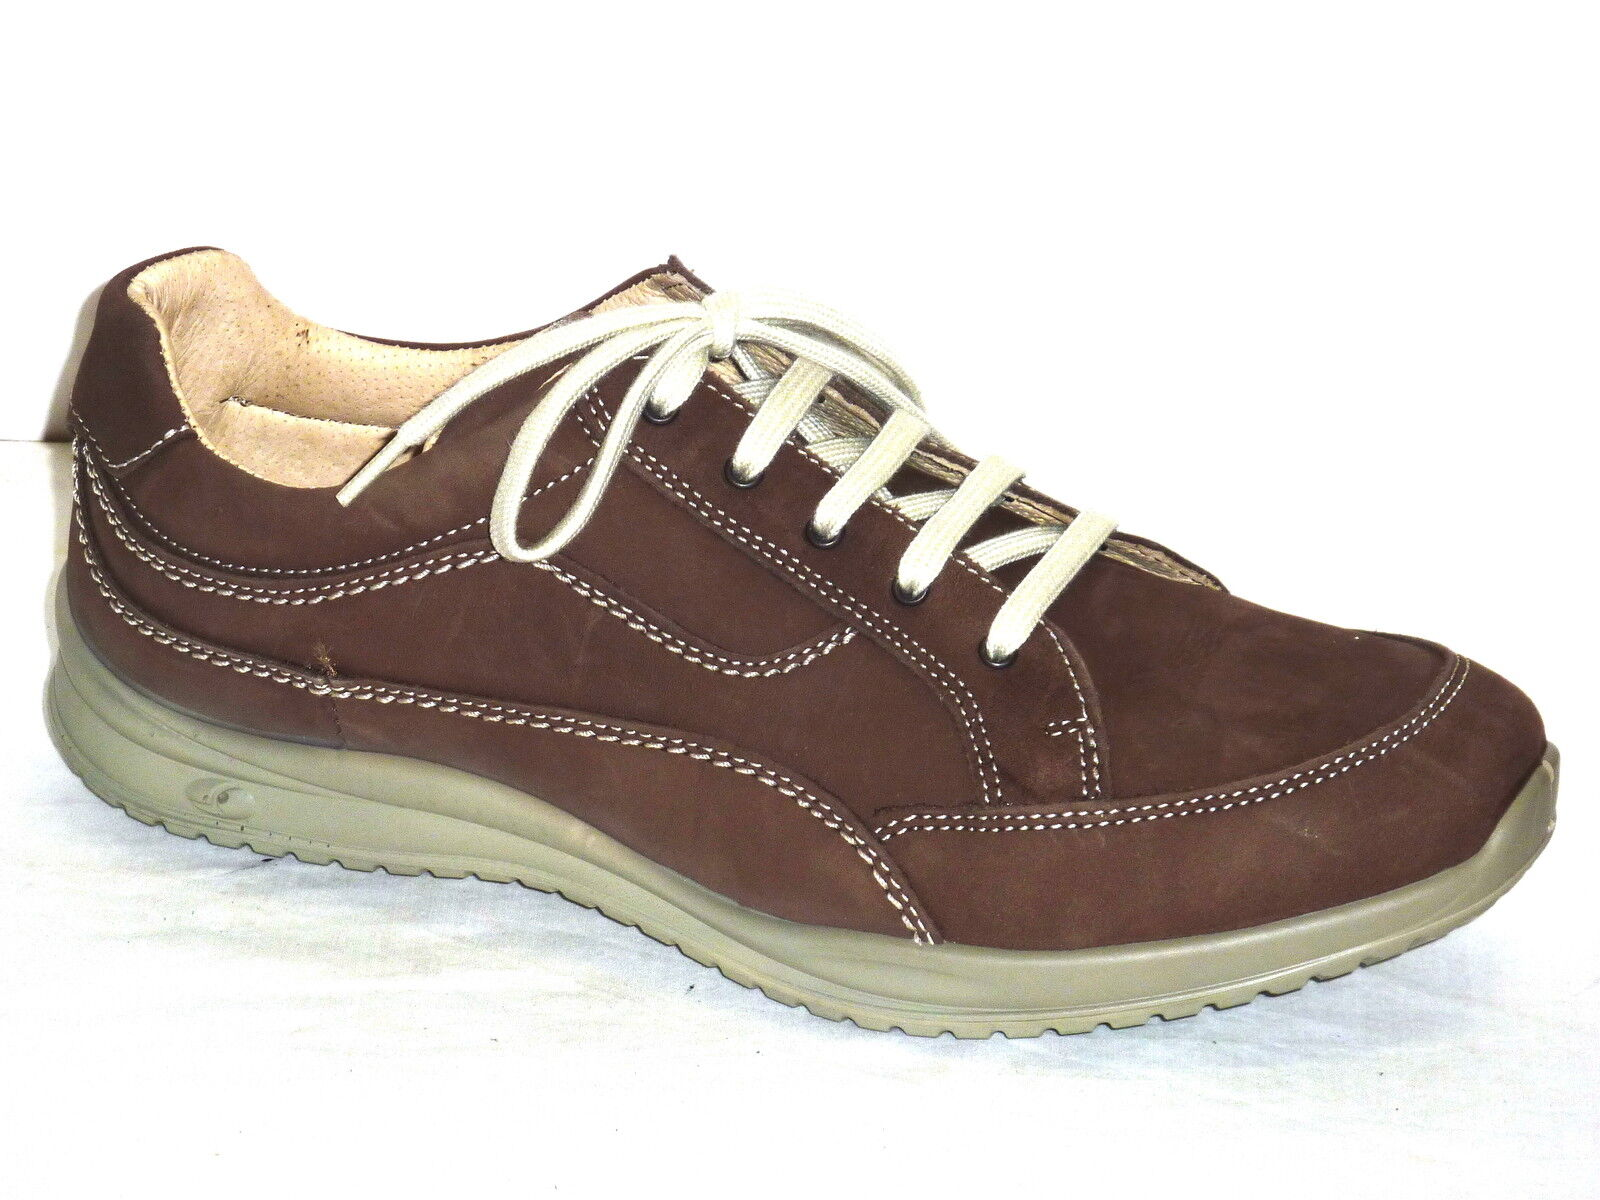 greyPORT shoes men ANTISTATICA CASUAL TEMPO LIBERO PELLE NABUK  brown n. 39